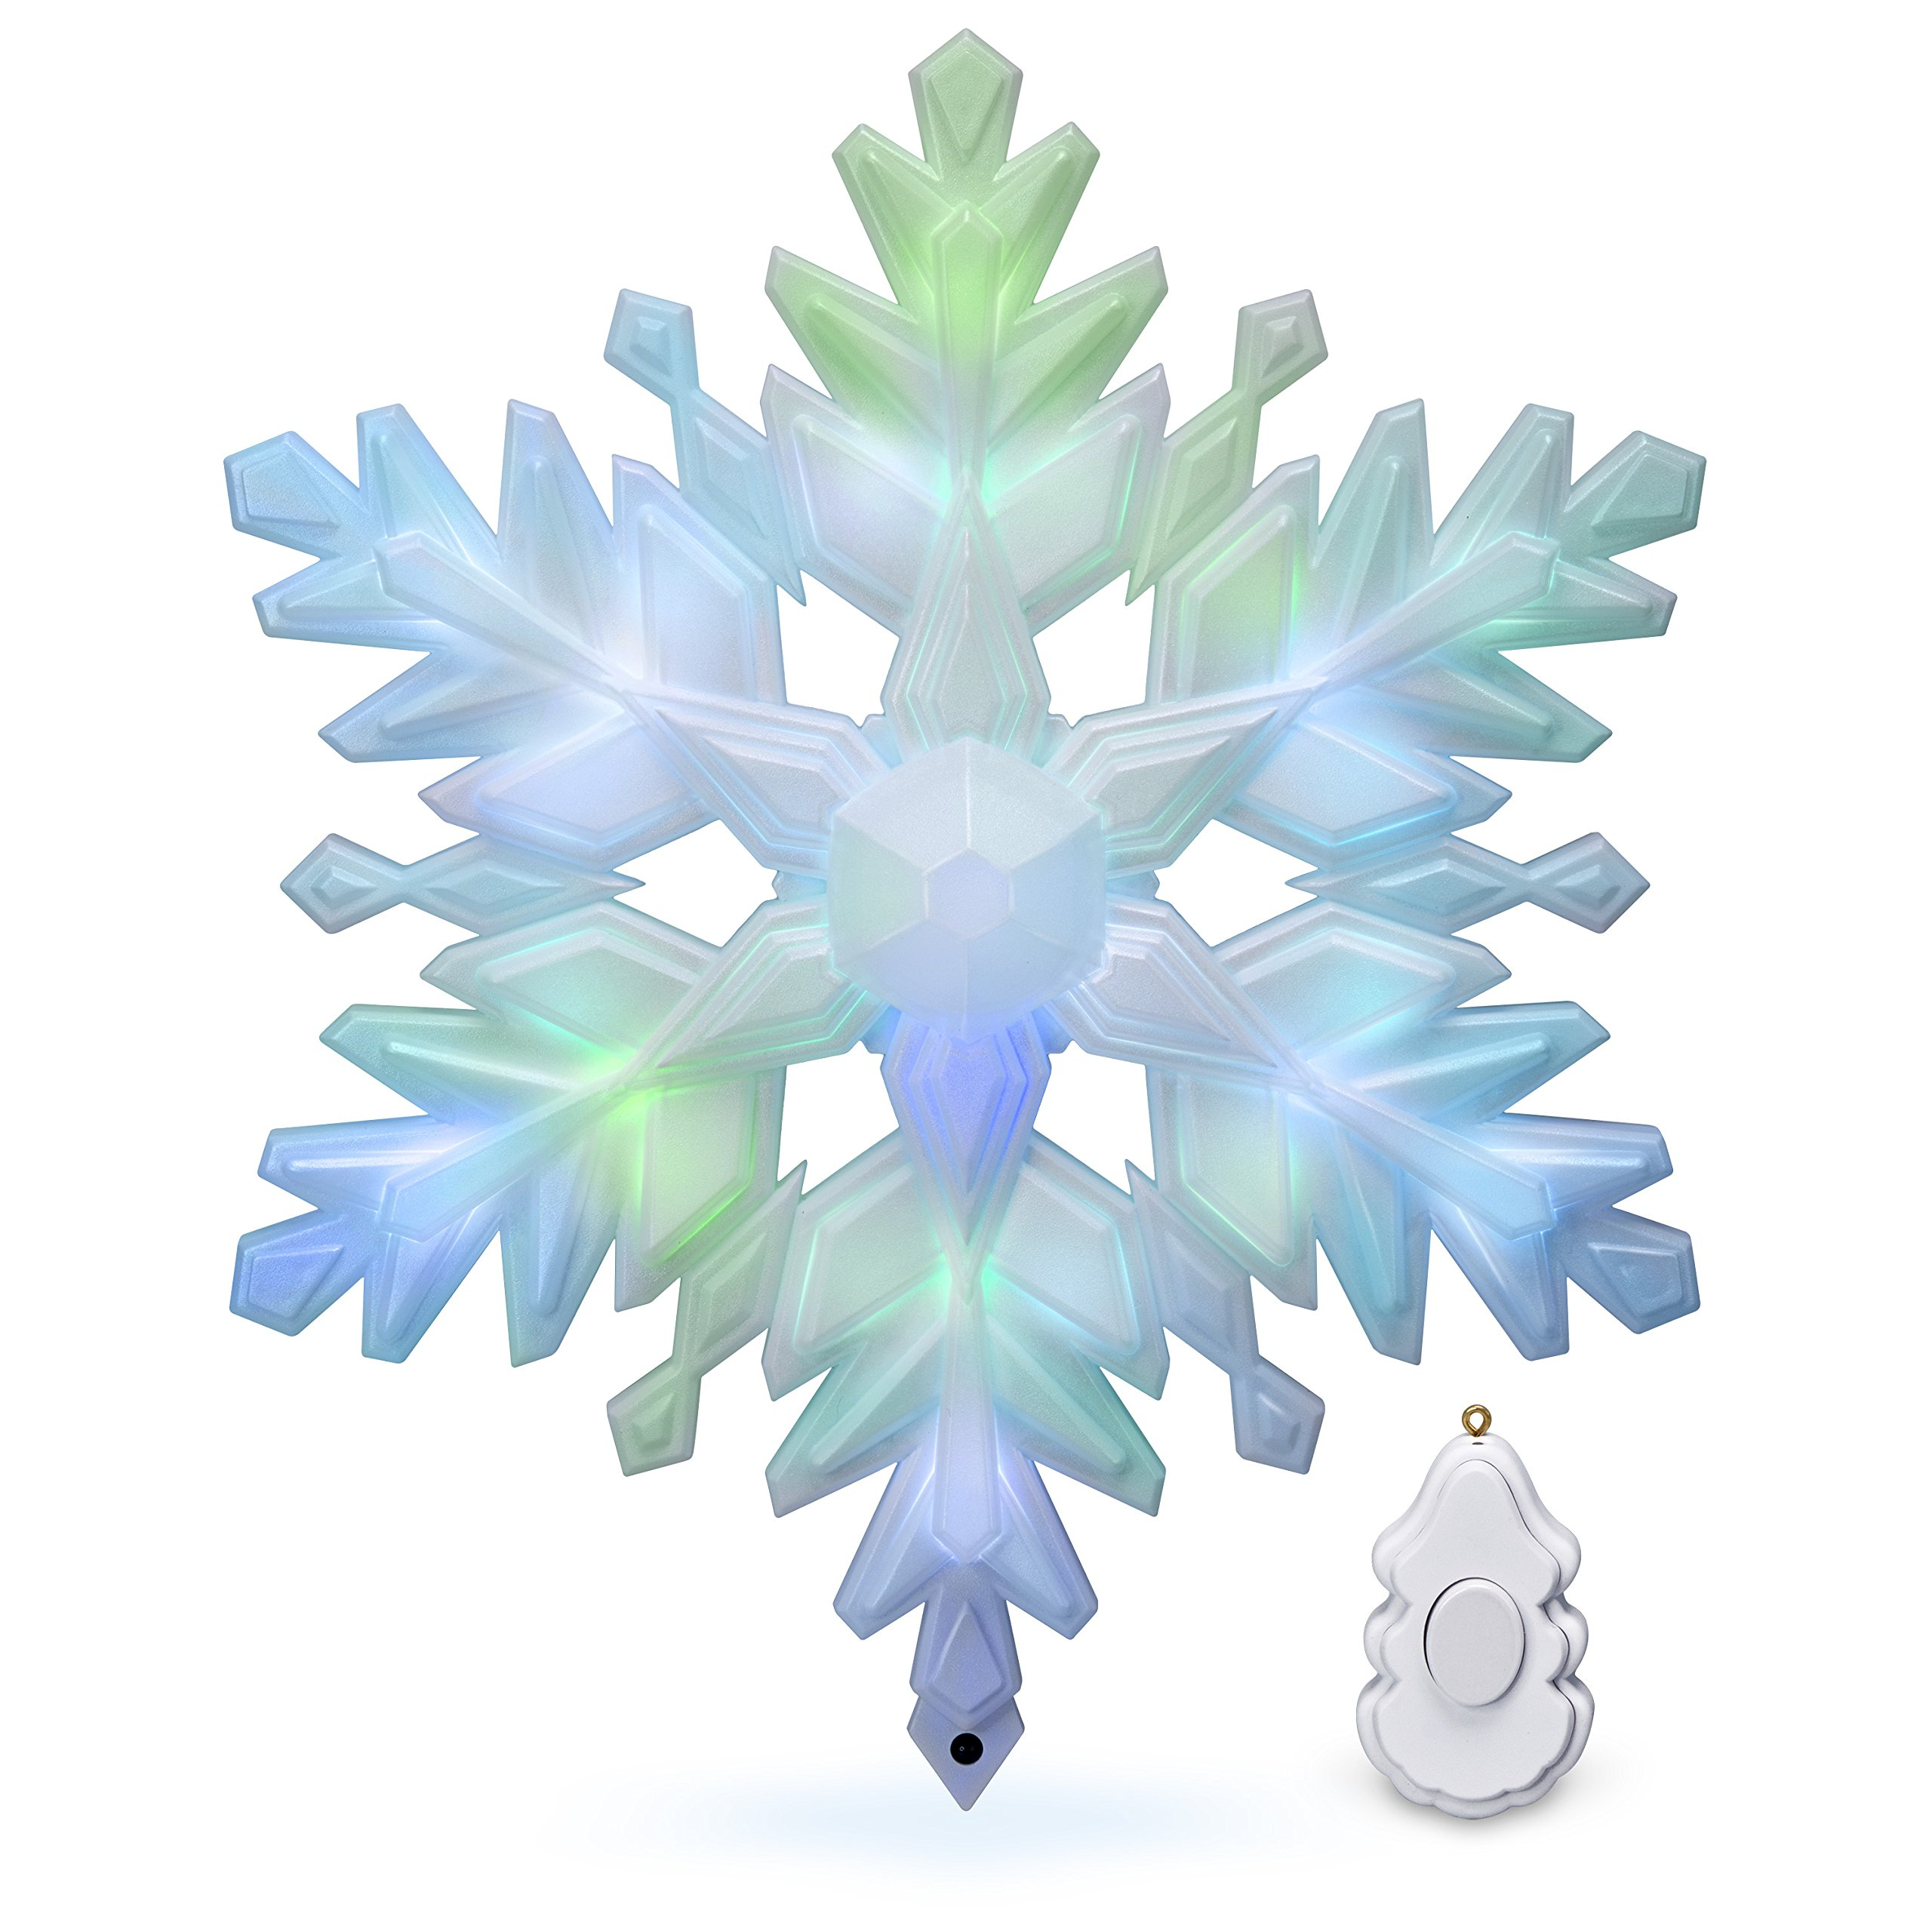 Hallmark Keepsake Christmas Tree Topper 2018 Year Dated, Stunning Snowflake With Music and Light